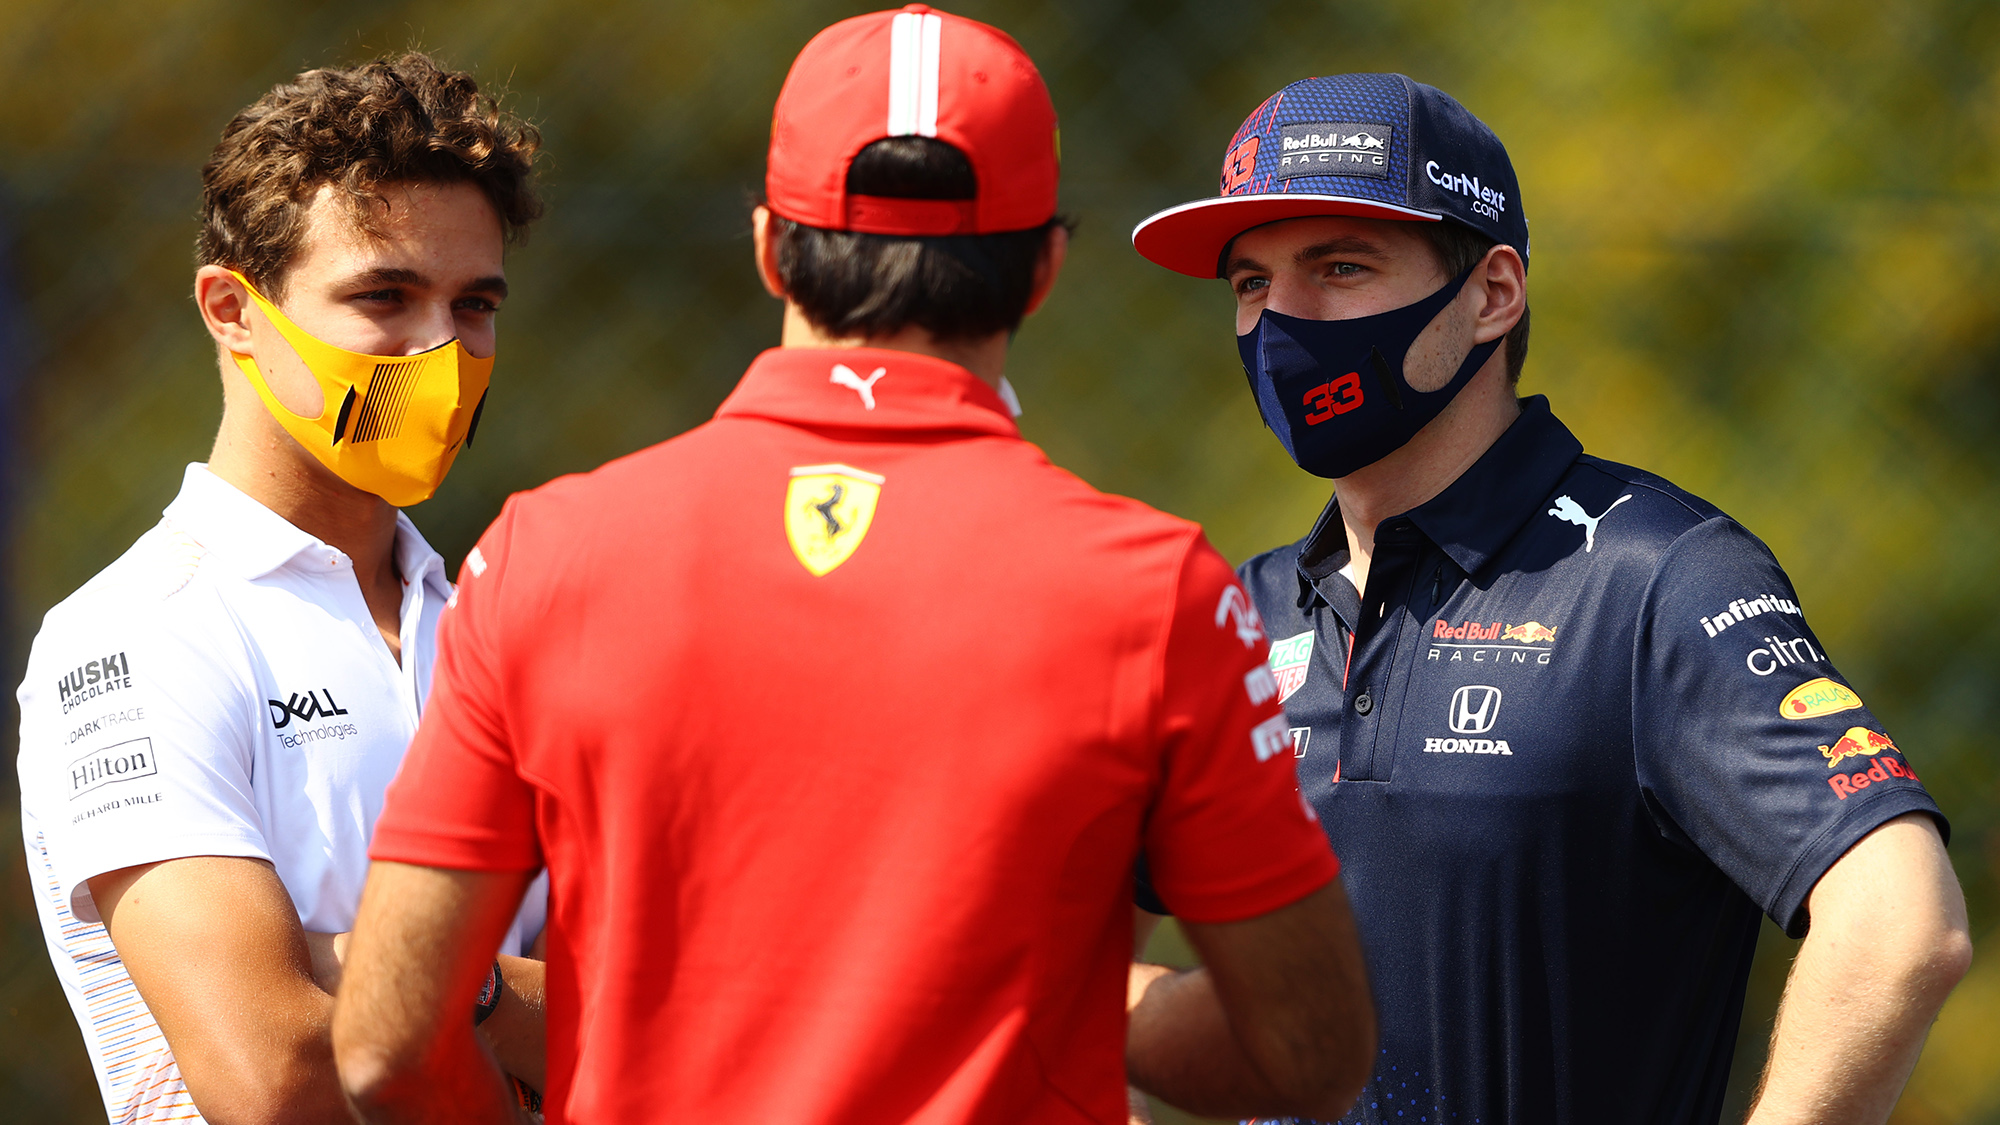 Max Verstappen talks with Lando Norris and Charles Leclerc at monza 2021